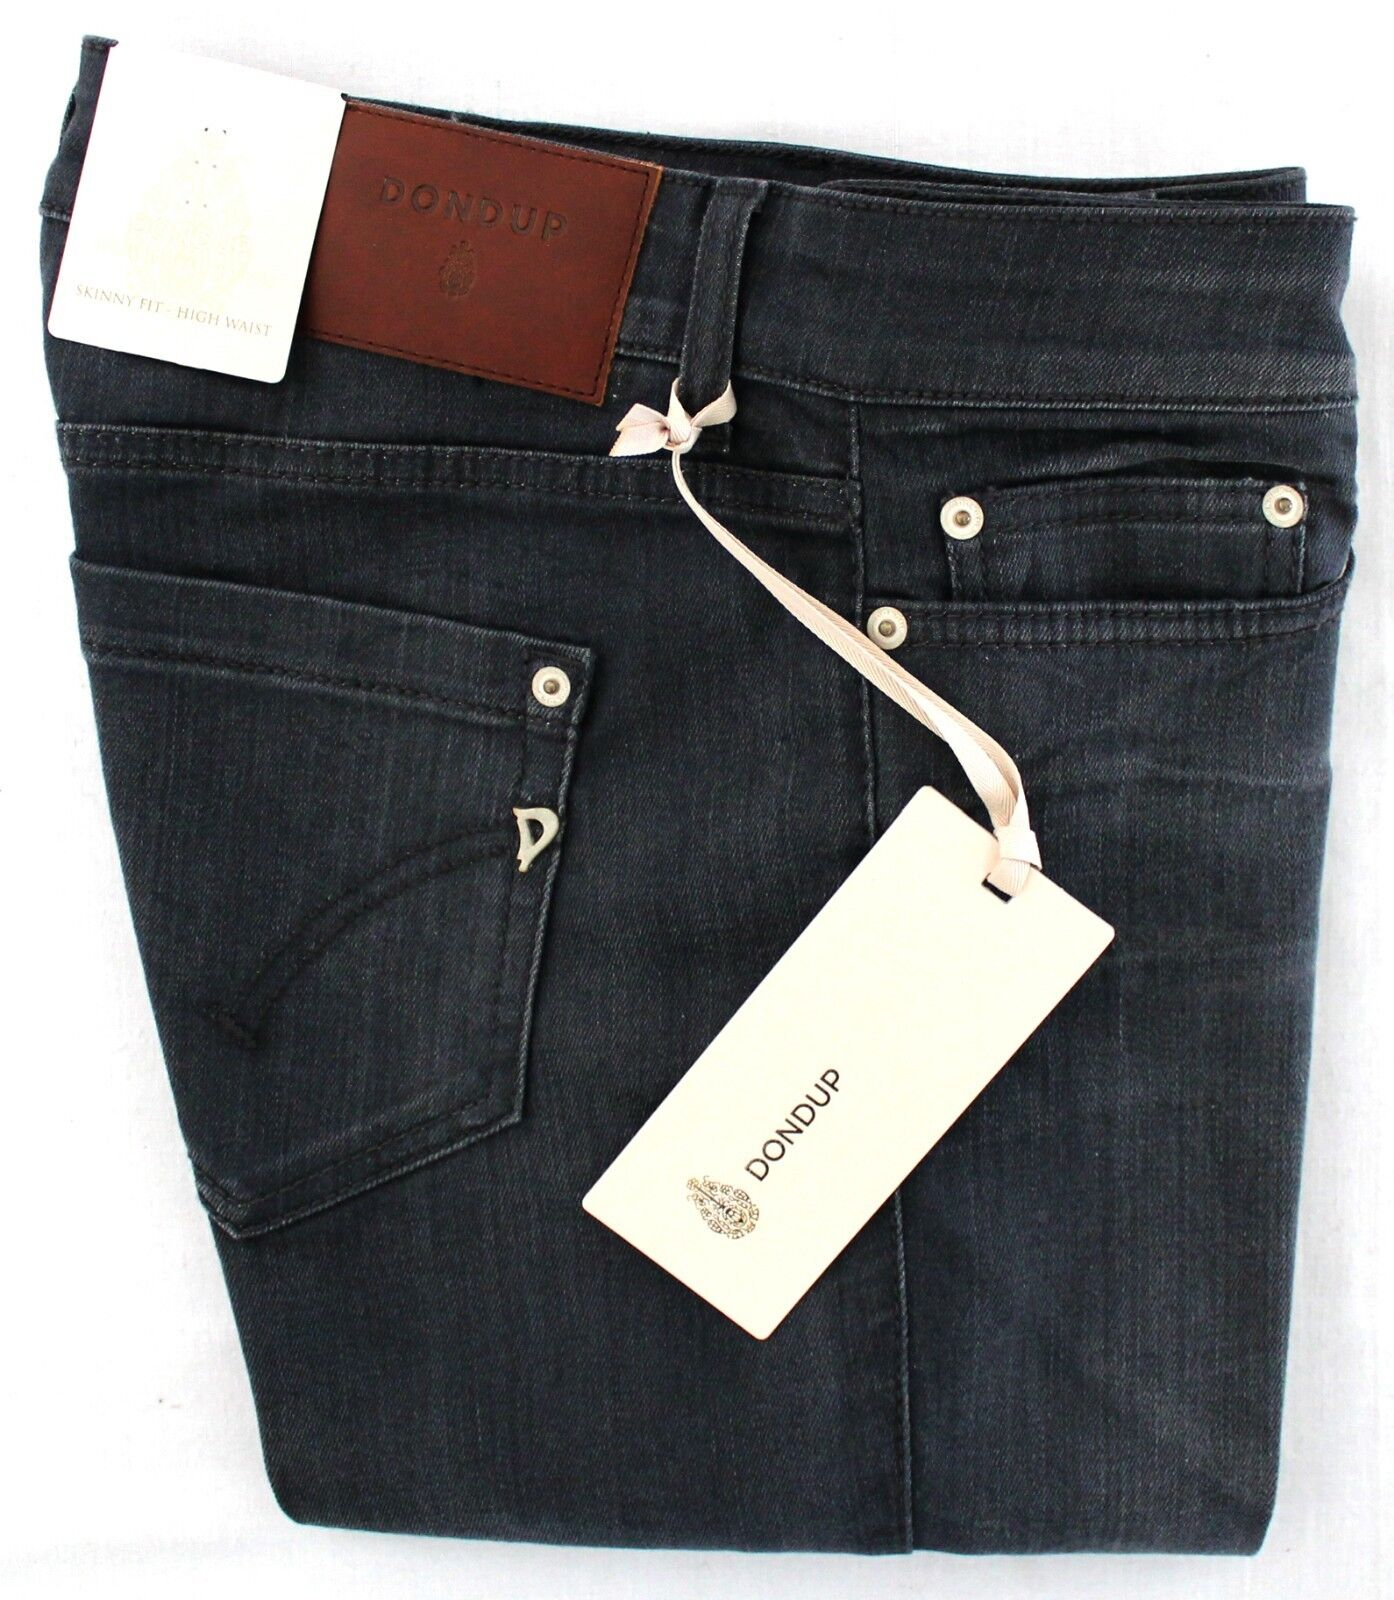 JEANS DONNA DONDUP SKINNY FIT HIGH WAIST STRETCH ELASTICIZZATO DENIM NEWLONG